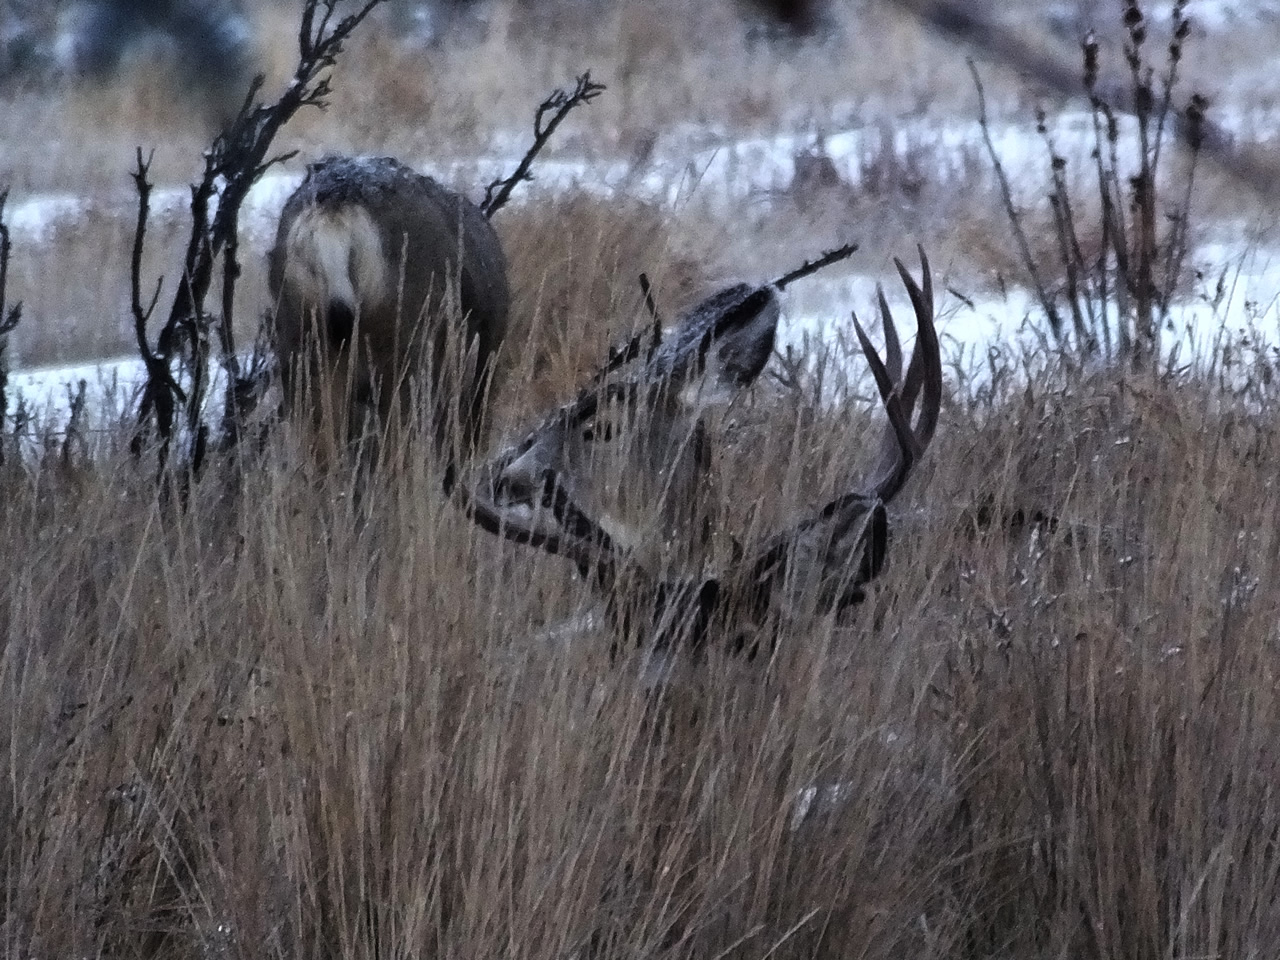 HS50exr Photo of Four Point Mule Deer with broken antler in grass